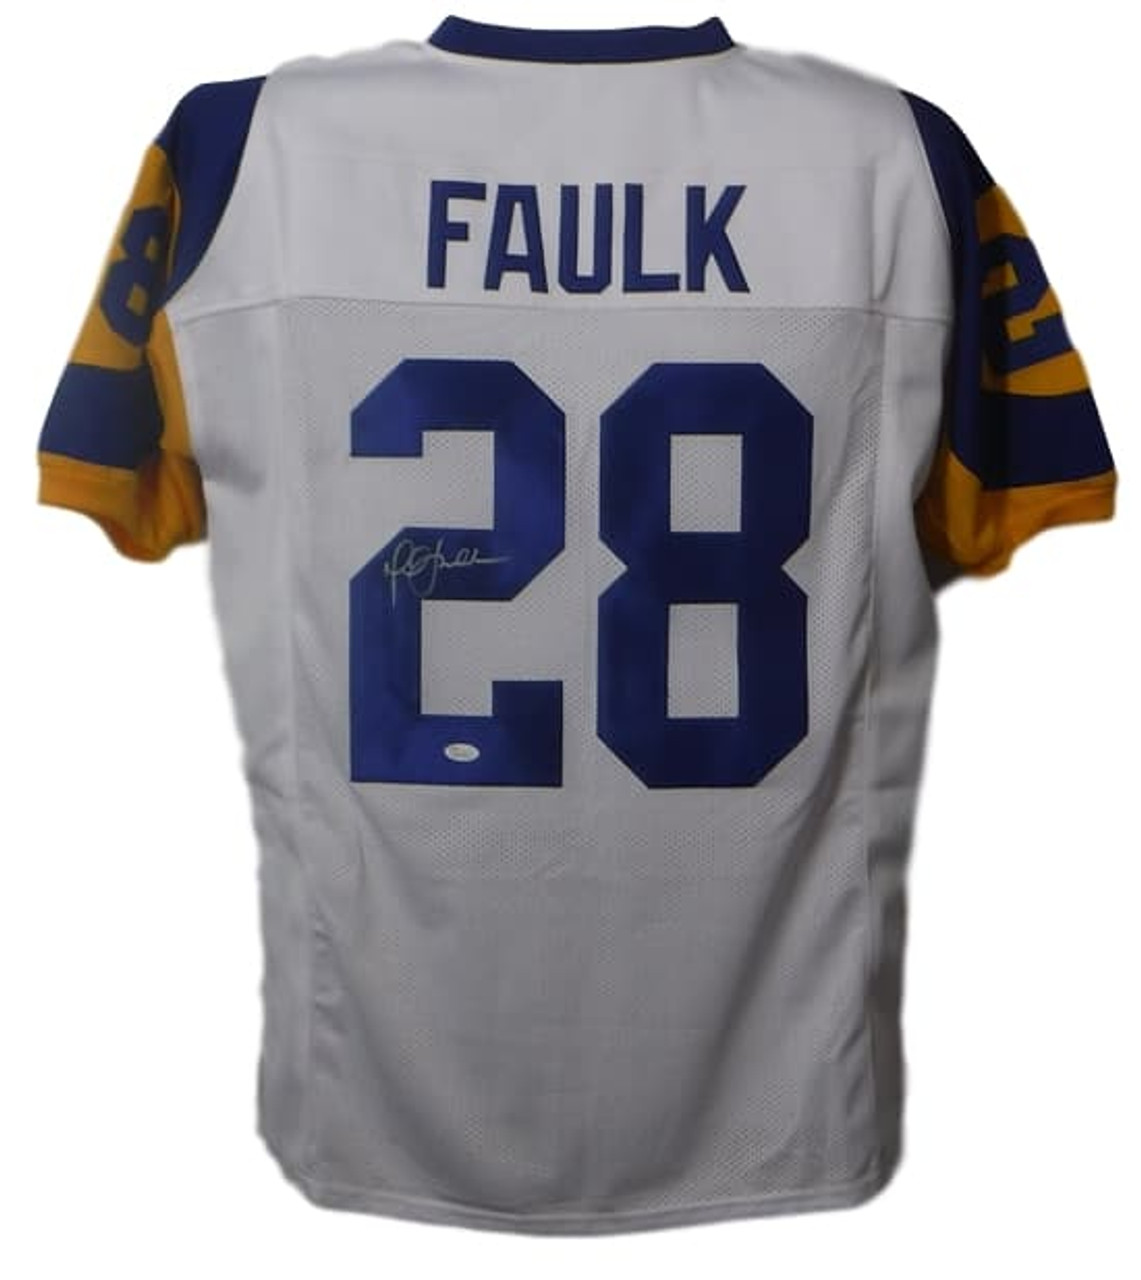 best website b6c02 a6238 Marshall Faulk Autographed Los Angeles Rams Custom Size XL White Jersey  (Name Only) JSA